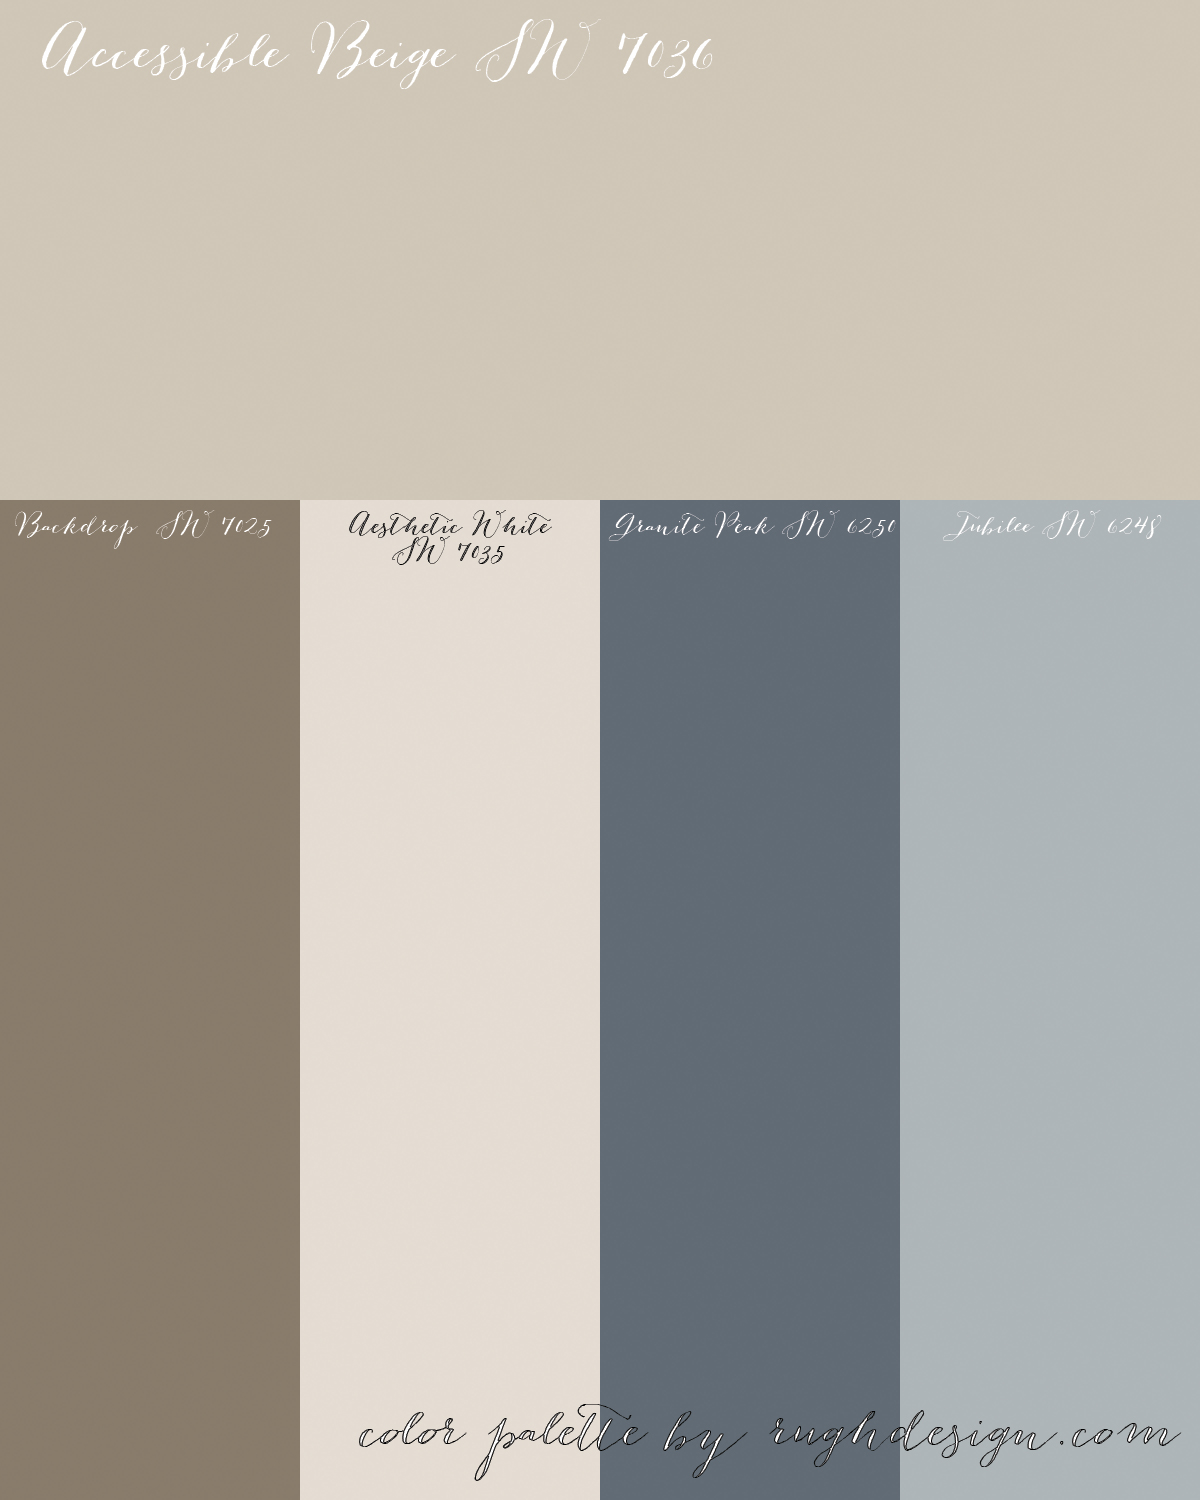 Accessible Beige SW 7036 With A Complementary Color Scheme Rugh Design